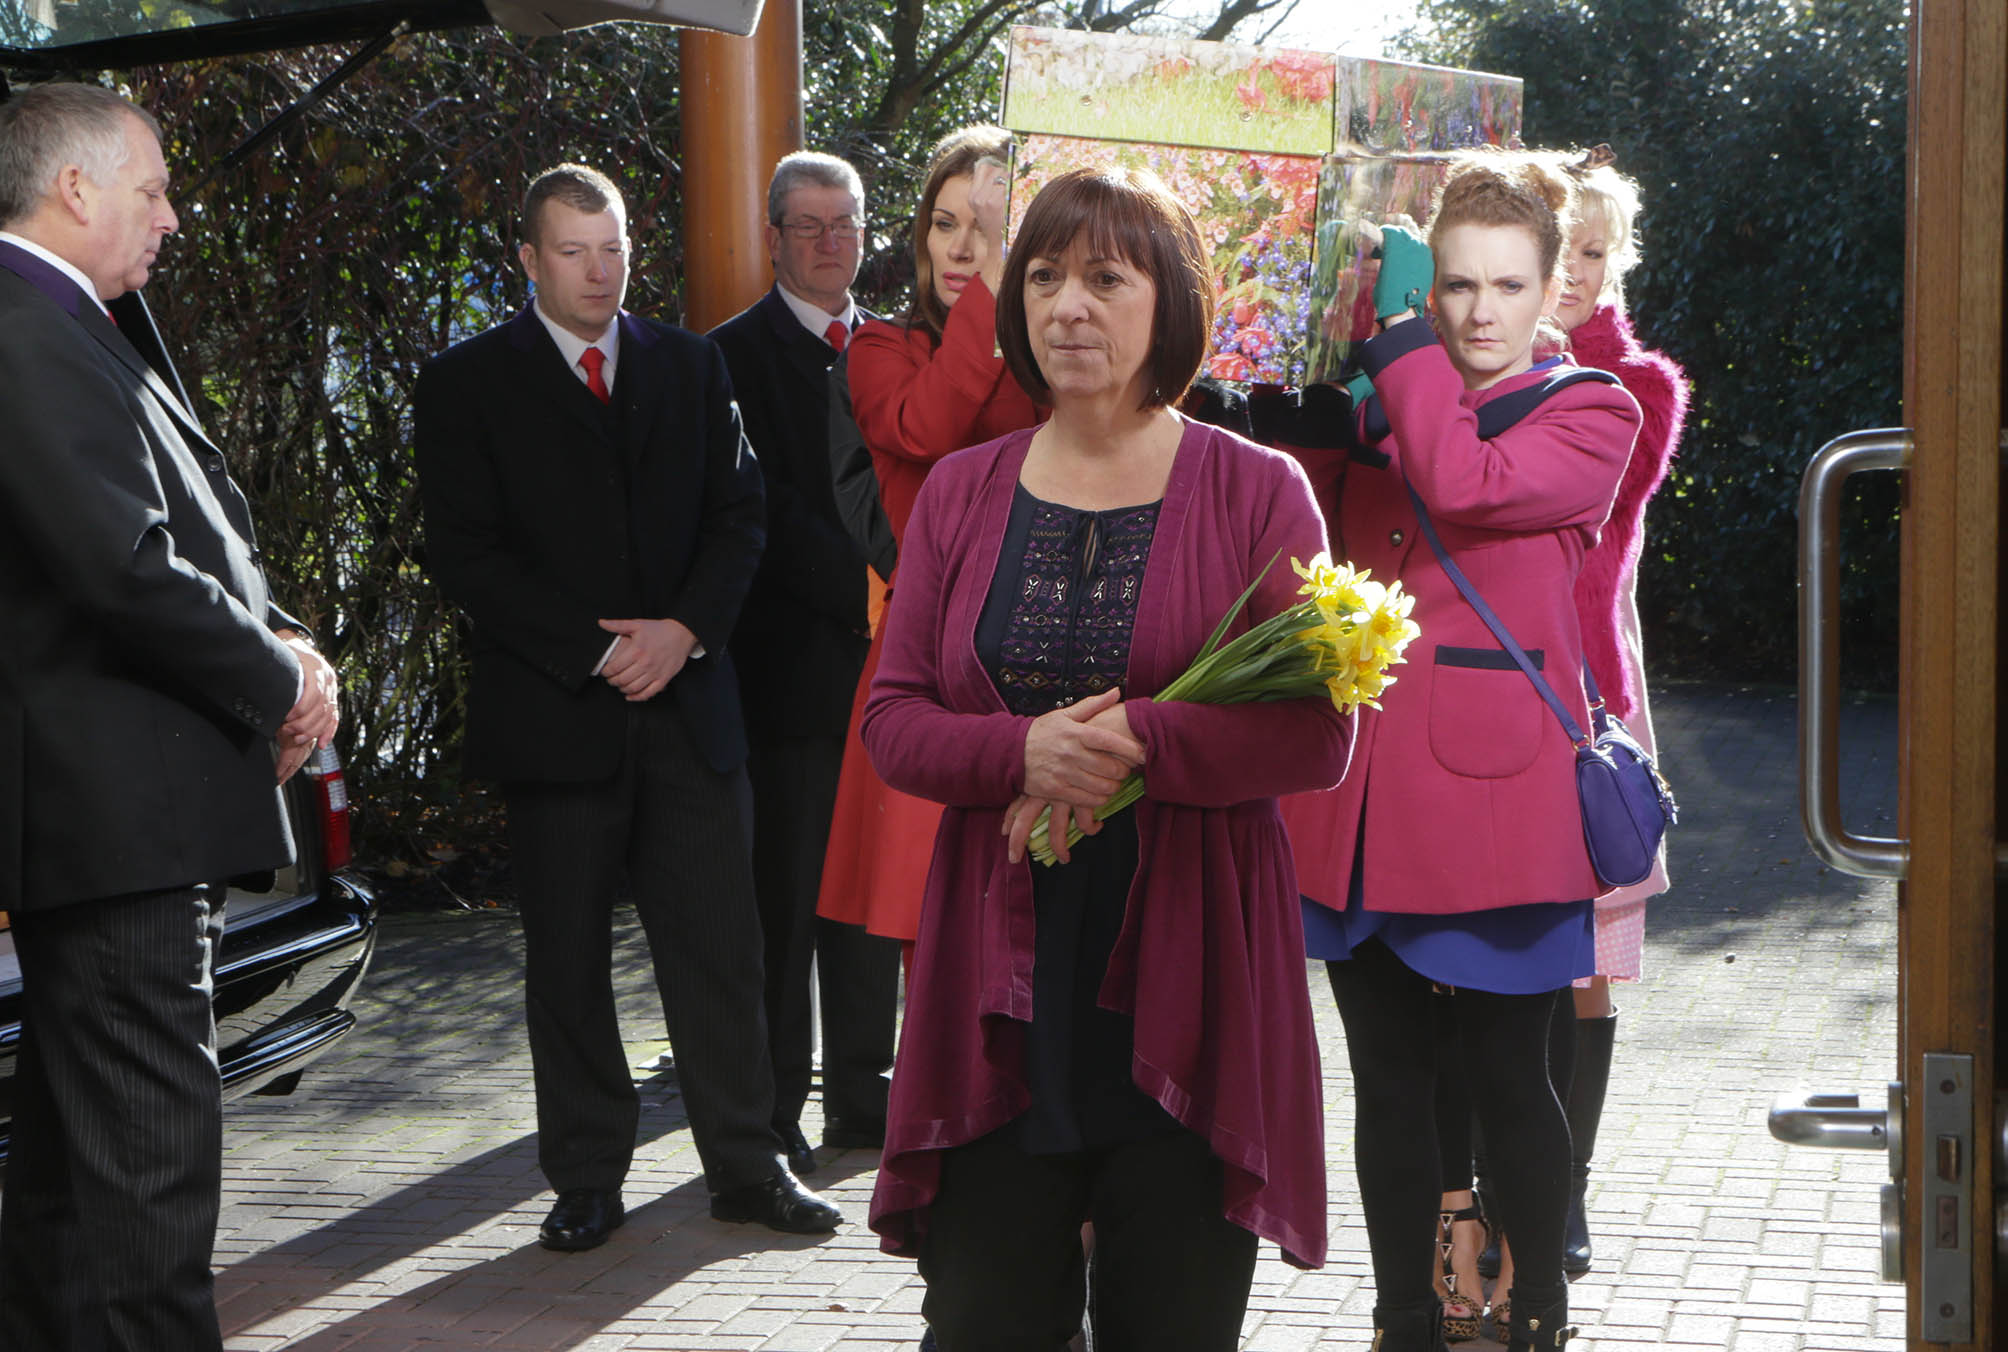 Hayley Cropper's Funeral on Coronation Street. Image from The Telegraph and Argus